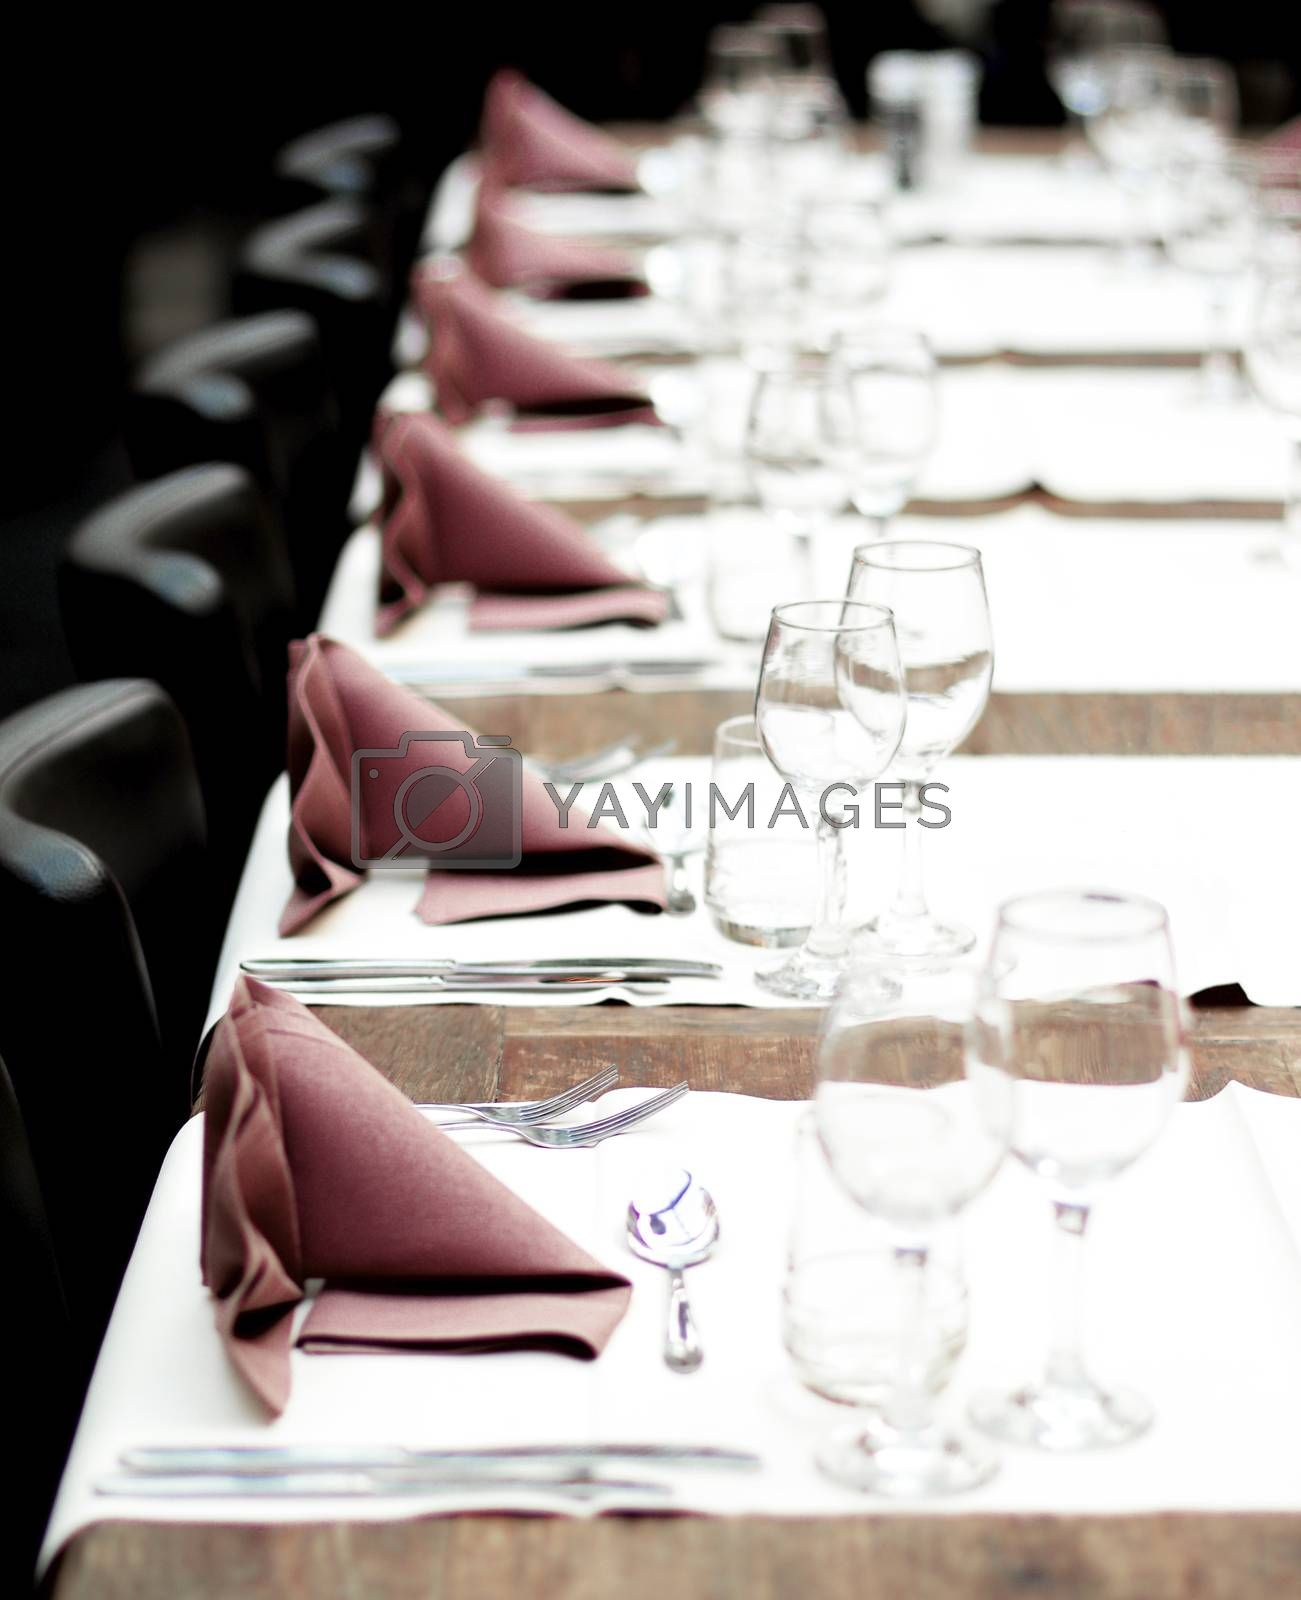 Restaurant Table Setting with Glasses, Silverware and Napkins on Vintage Wooden Table with Chairs closeup. Focus on Forks